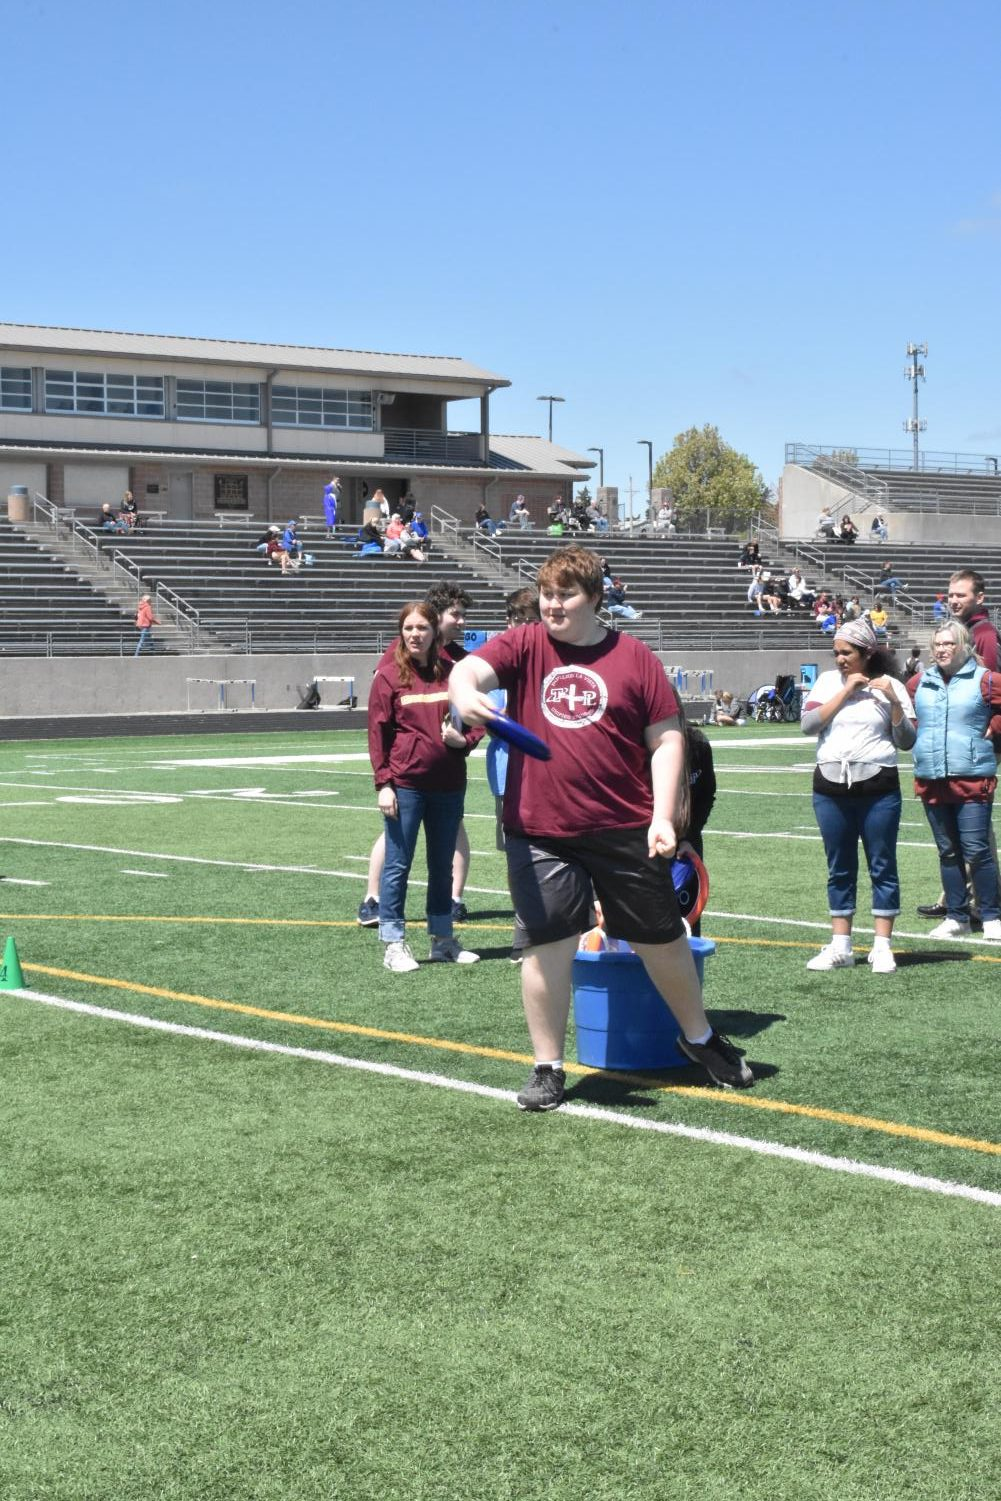 Ben+Taylor+determinedly+throws+a+frisbee.+Although+unconventional+field+events+were+included+in+the+competition%2C+the+athletes+performed+at+a+level+equal+to+a+normal+meet.